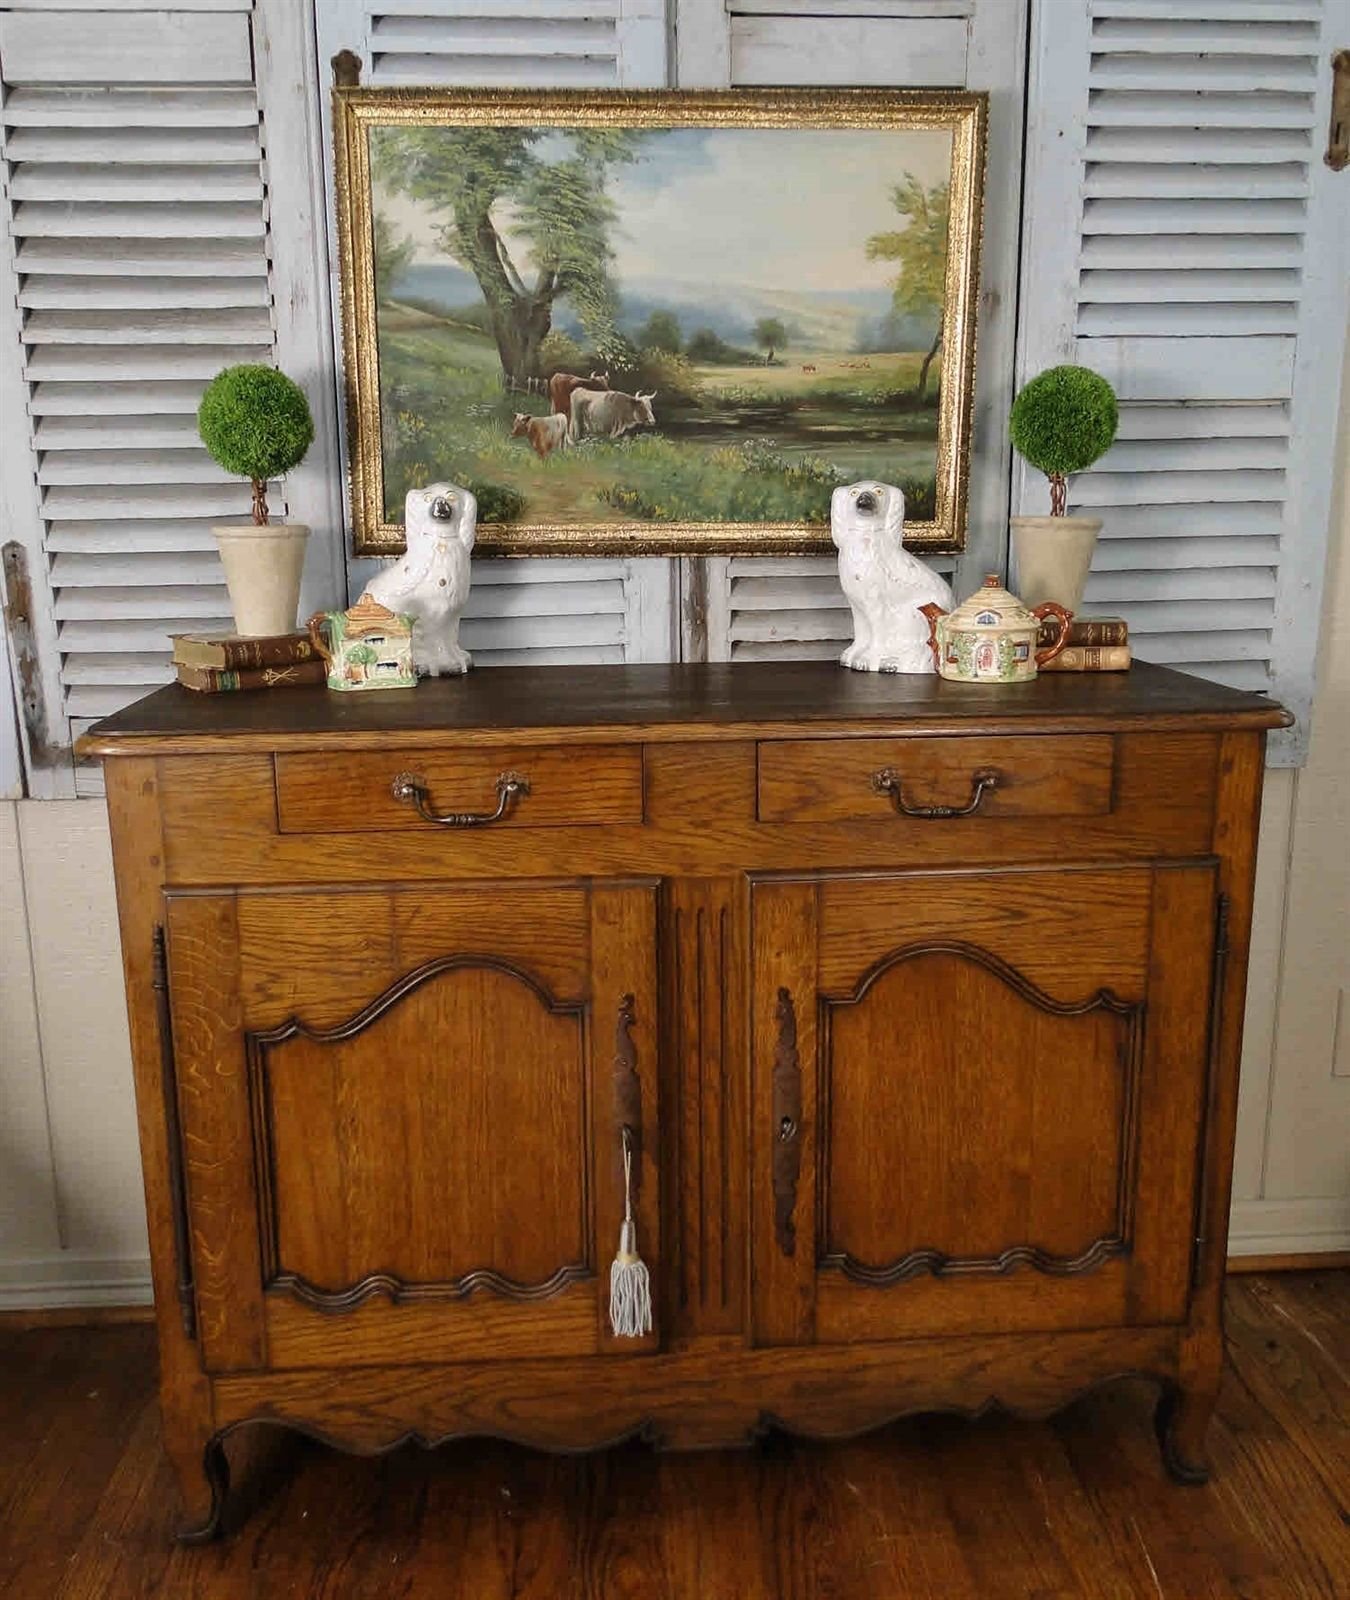 French Antique Country Buffet and Sideboard Server with Provence Simplicity from the 1800's